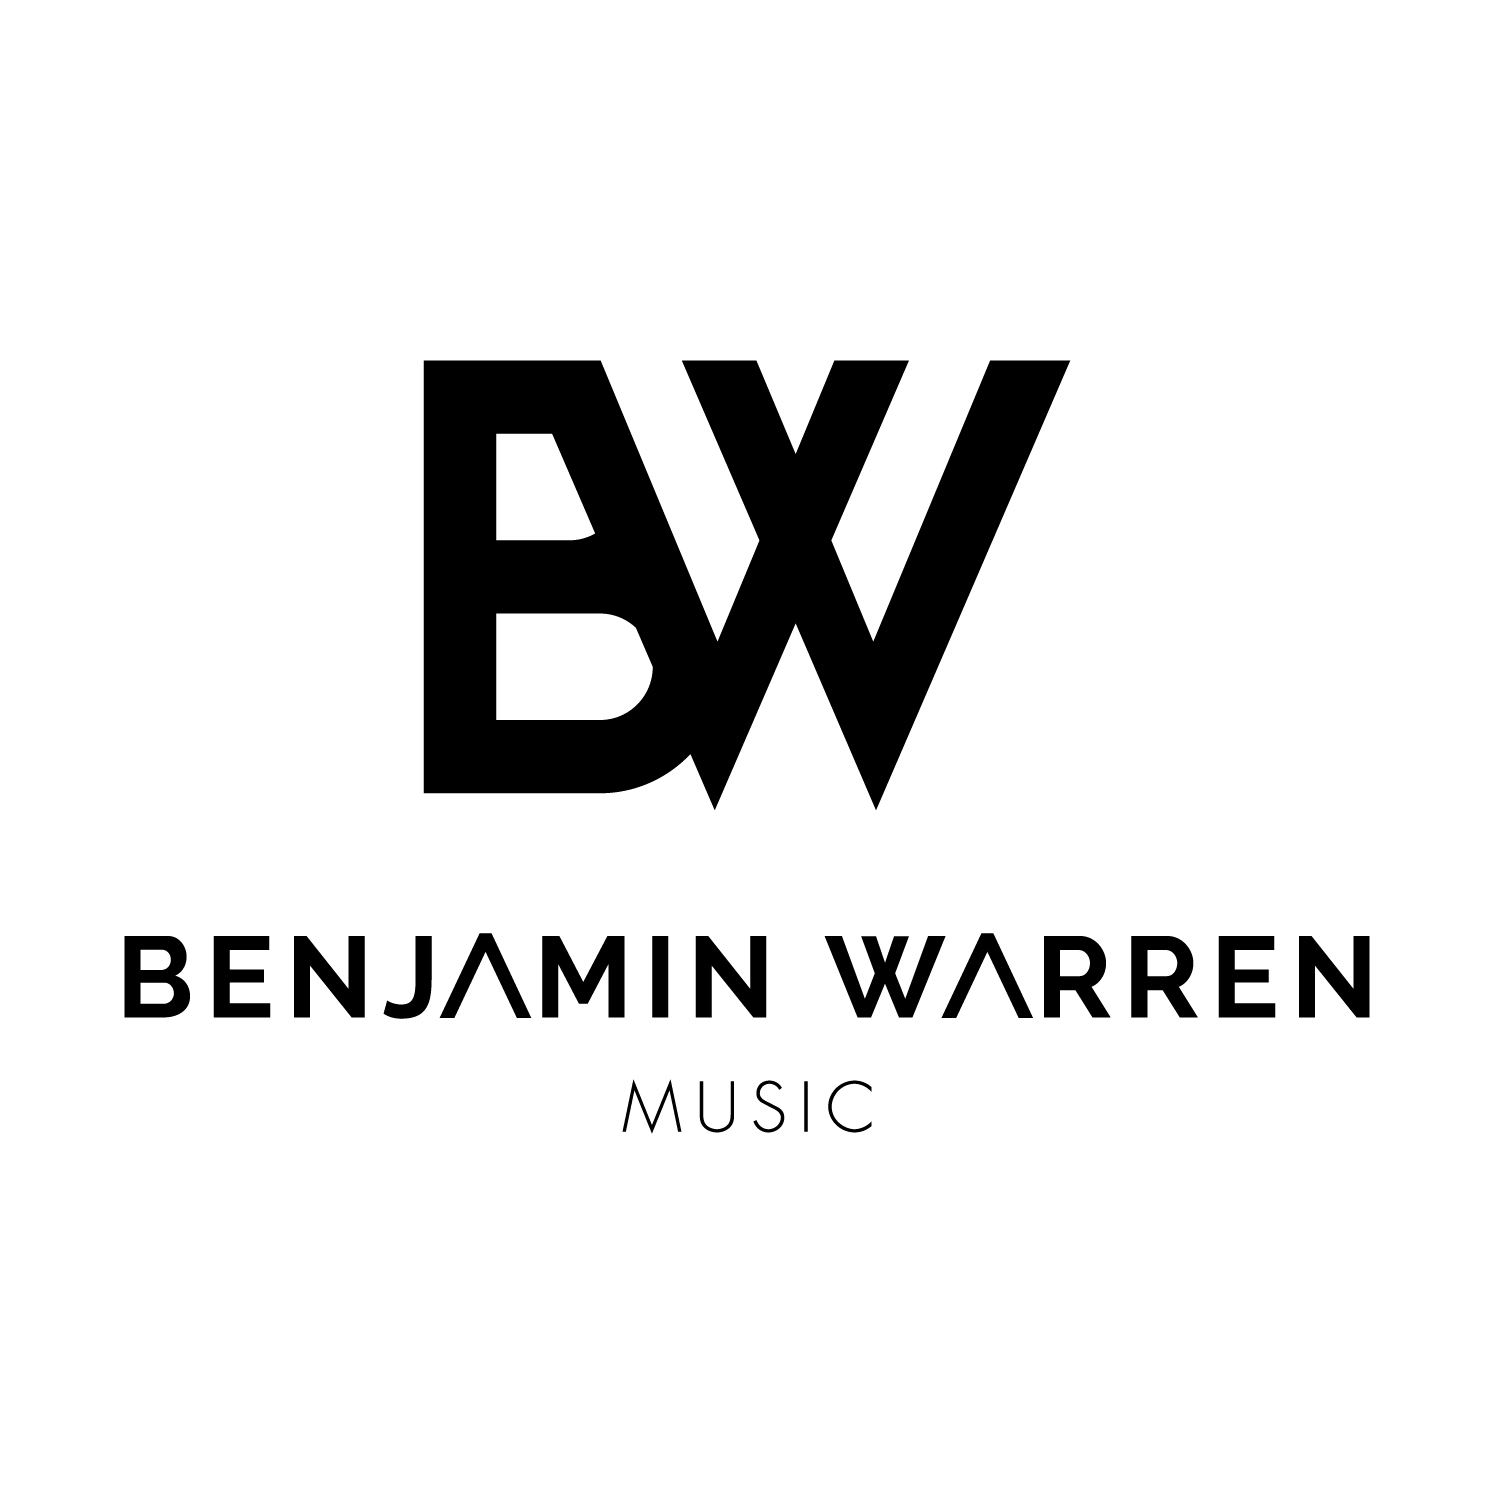 Benjamin Warren Music